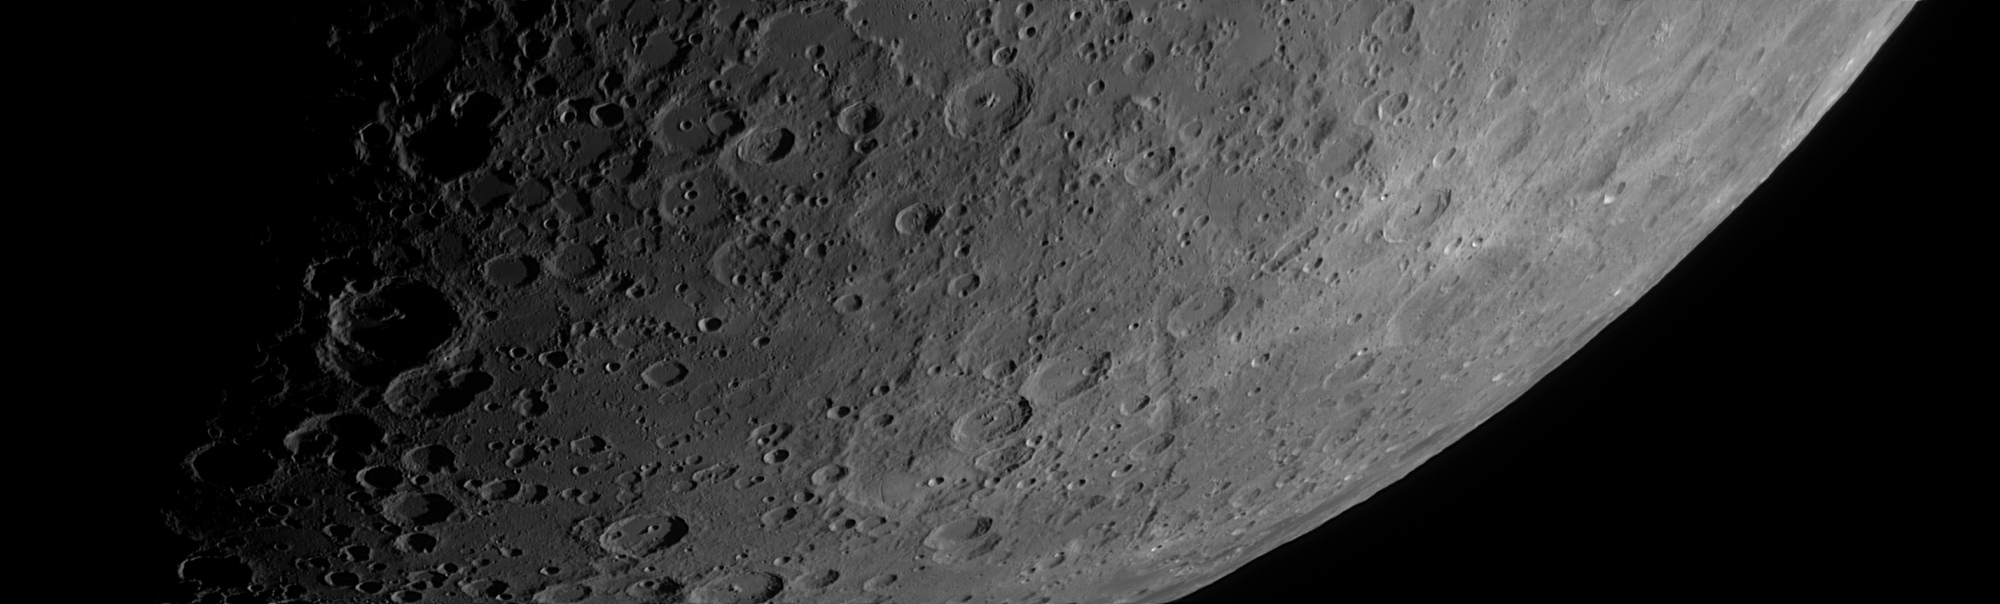 5de8985f7c473_Moon_173955_031219_ZWOASI290MM_IR_720nm_AS_P25_lapl6_ap684_stitch.thumb.jpg.afc03951dd35702b86398a4f83466481.jpg